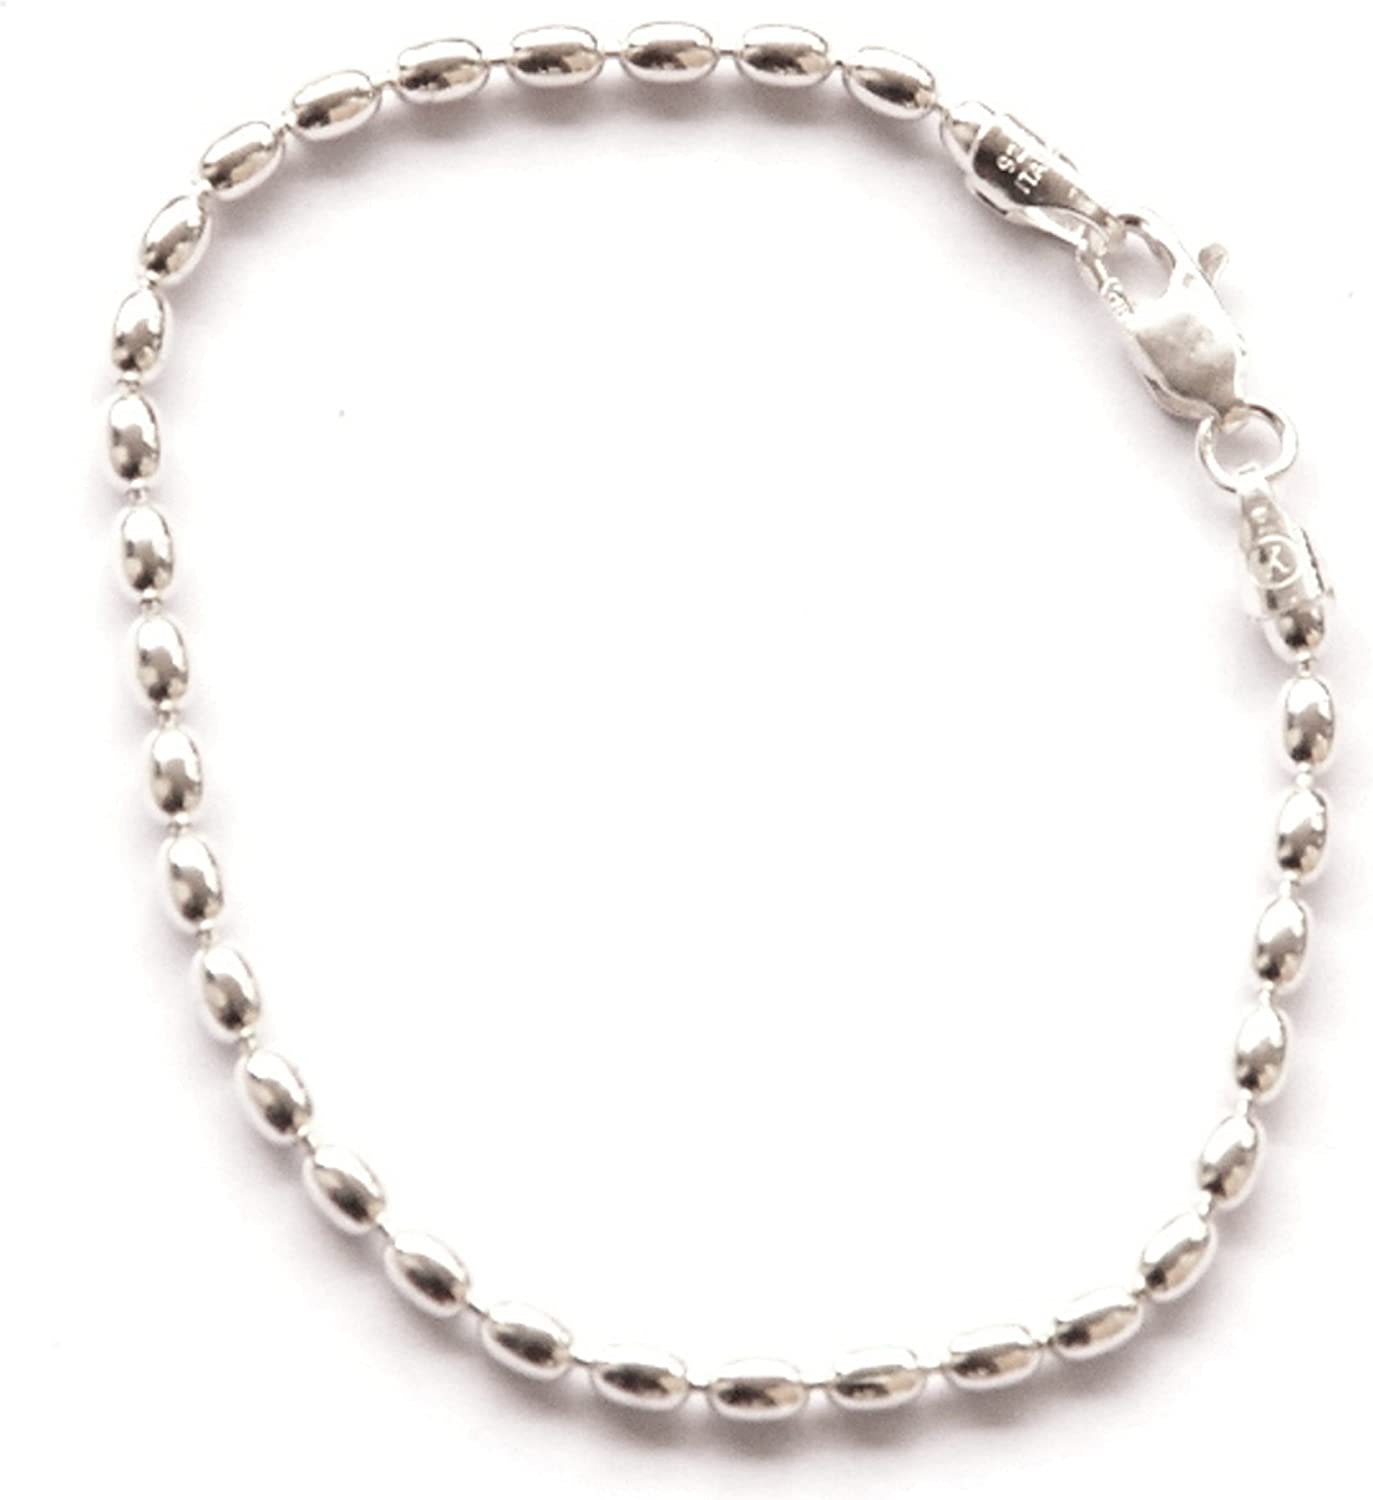 Bracelet 2.5mm Link 925 Sterling Silver 6 to 13 Inches JOSCO Mother of Pearl Anklet